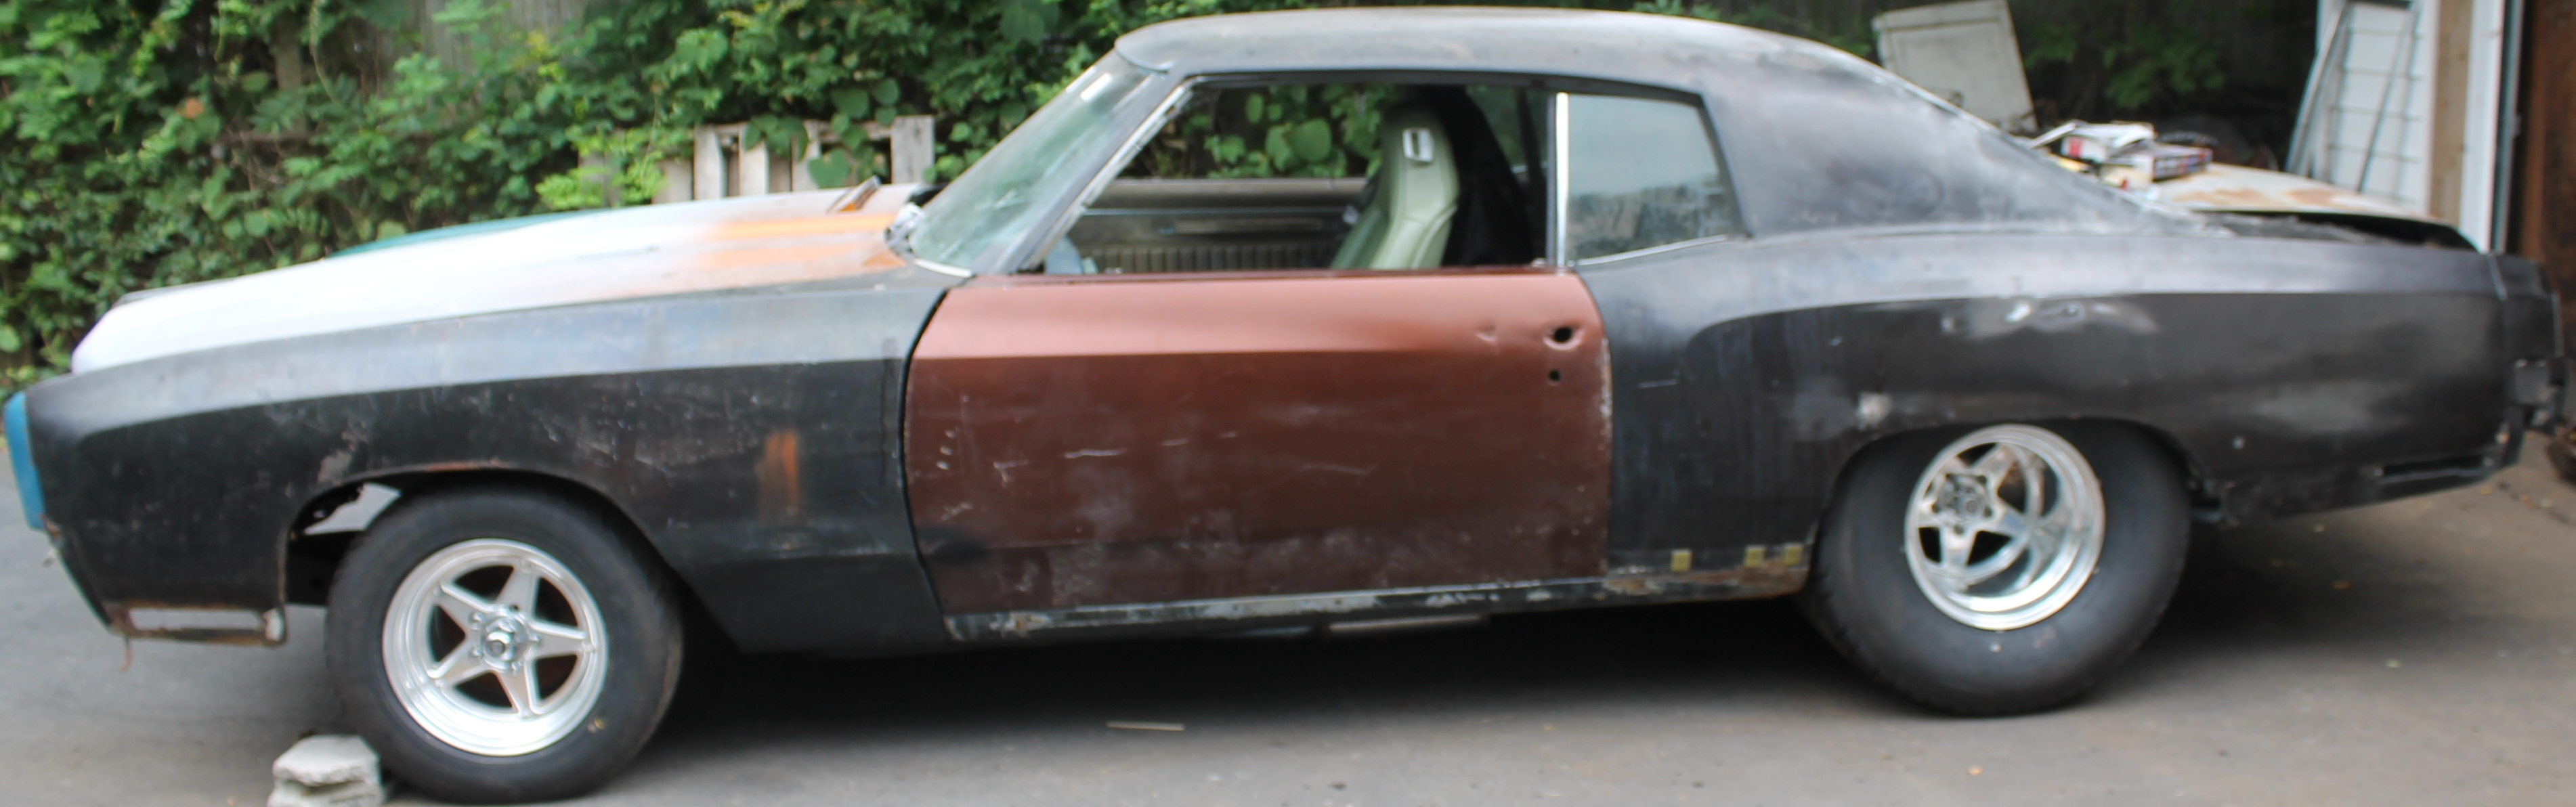 Sheet metal hung sitting on the wheels and tires. seats are a 73 Monte Carlo swivel seats. - 19097120